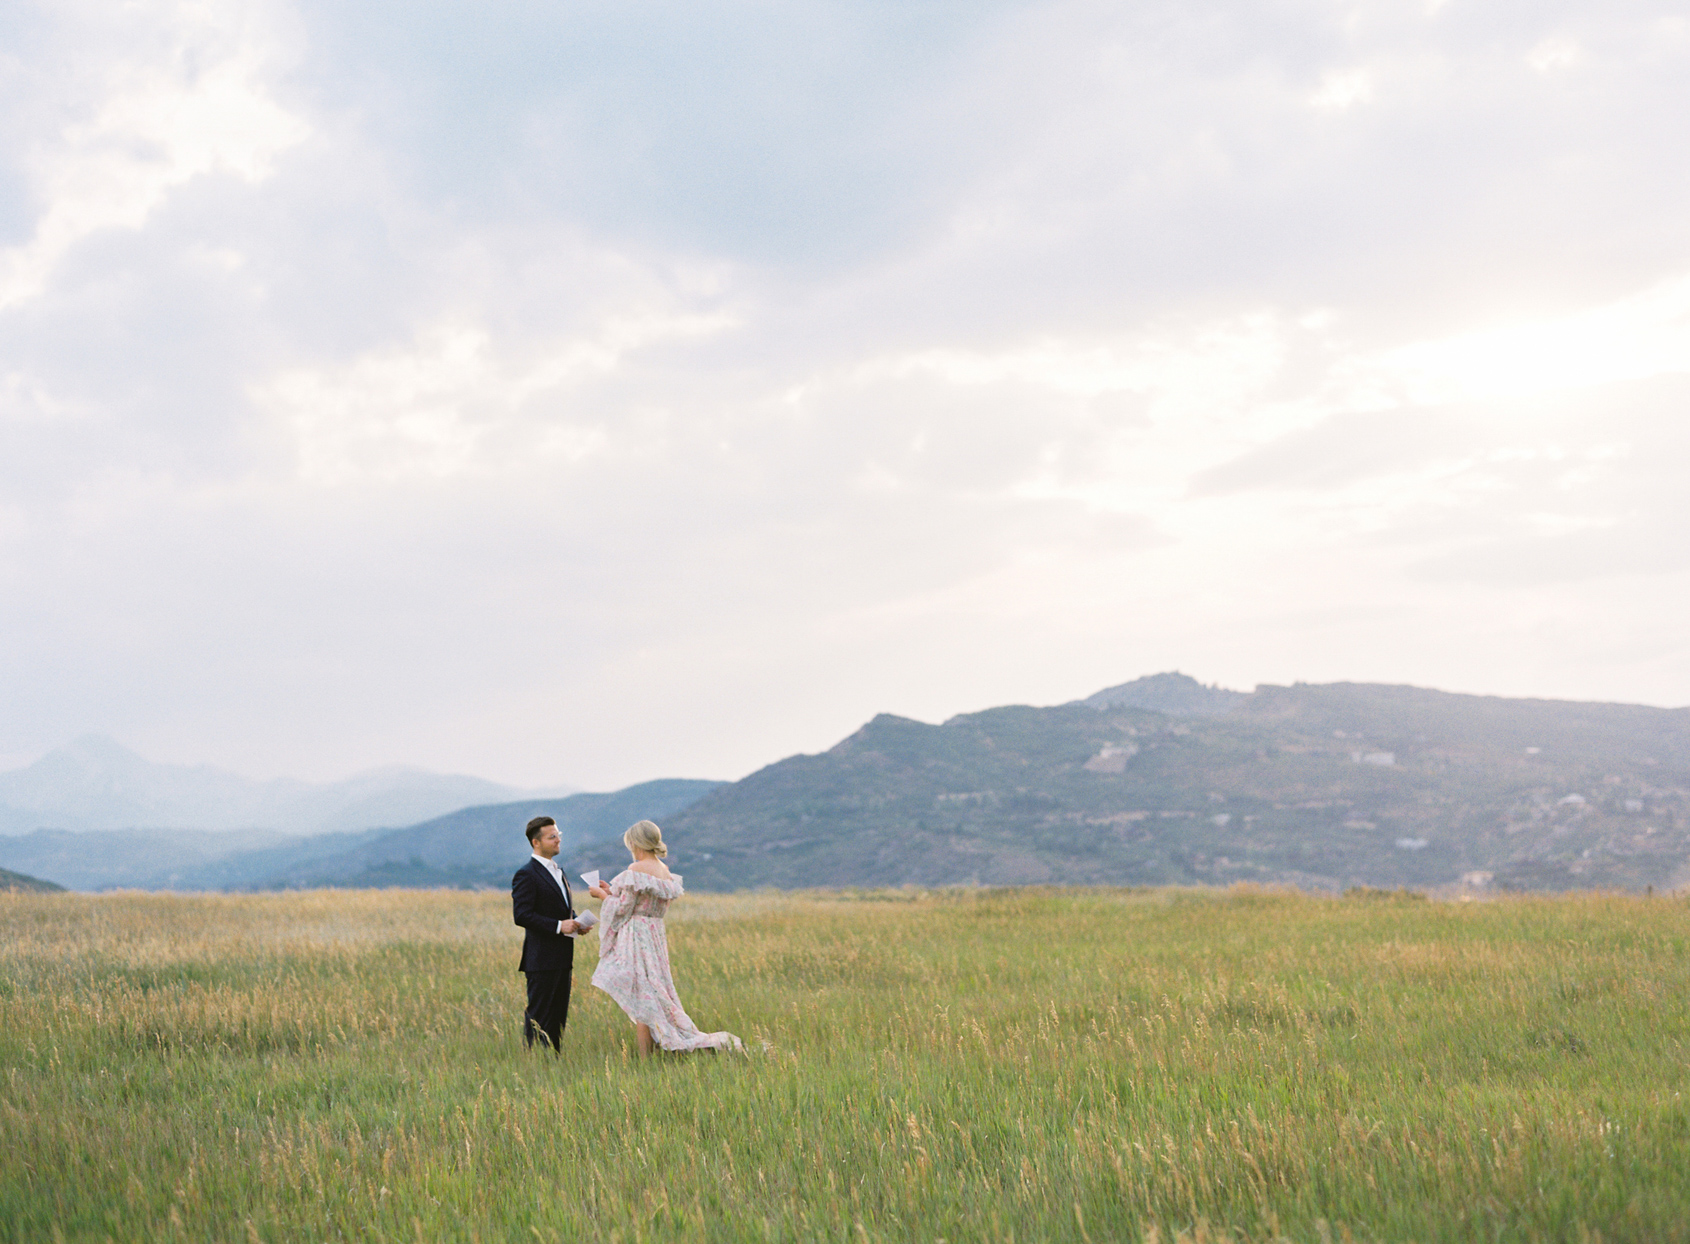 exchanging vows in field with mountain backdrop